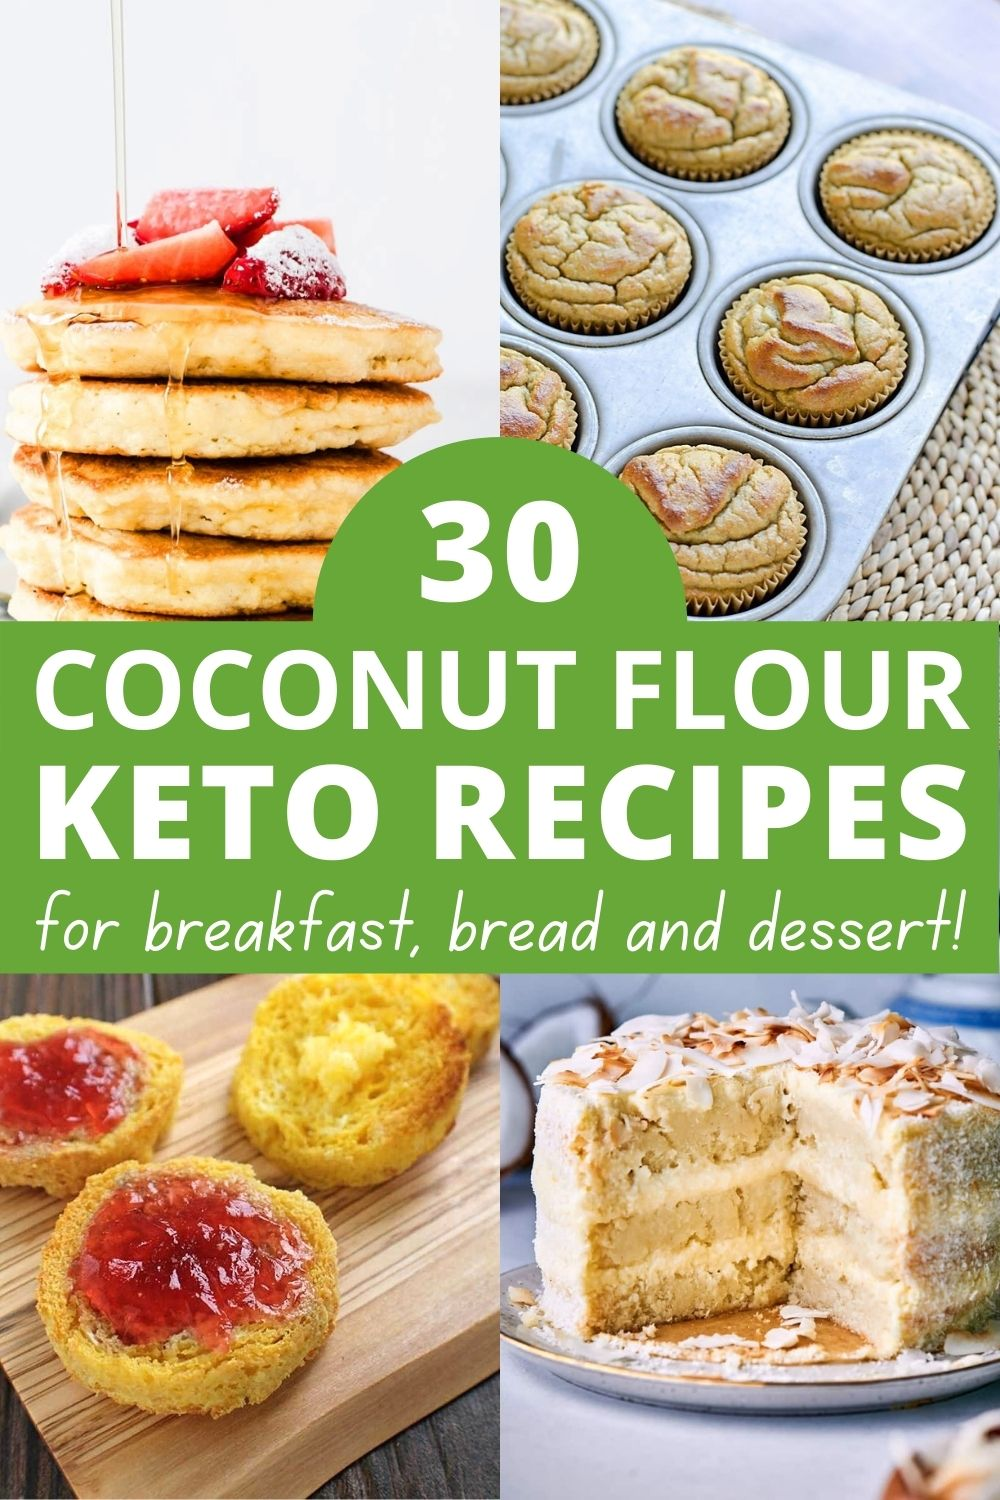 30 Best Coconut Flour Keto Recipes For Bread, Cookies & More